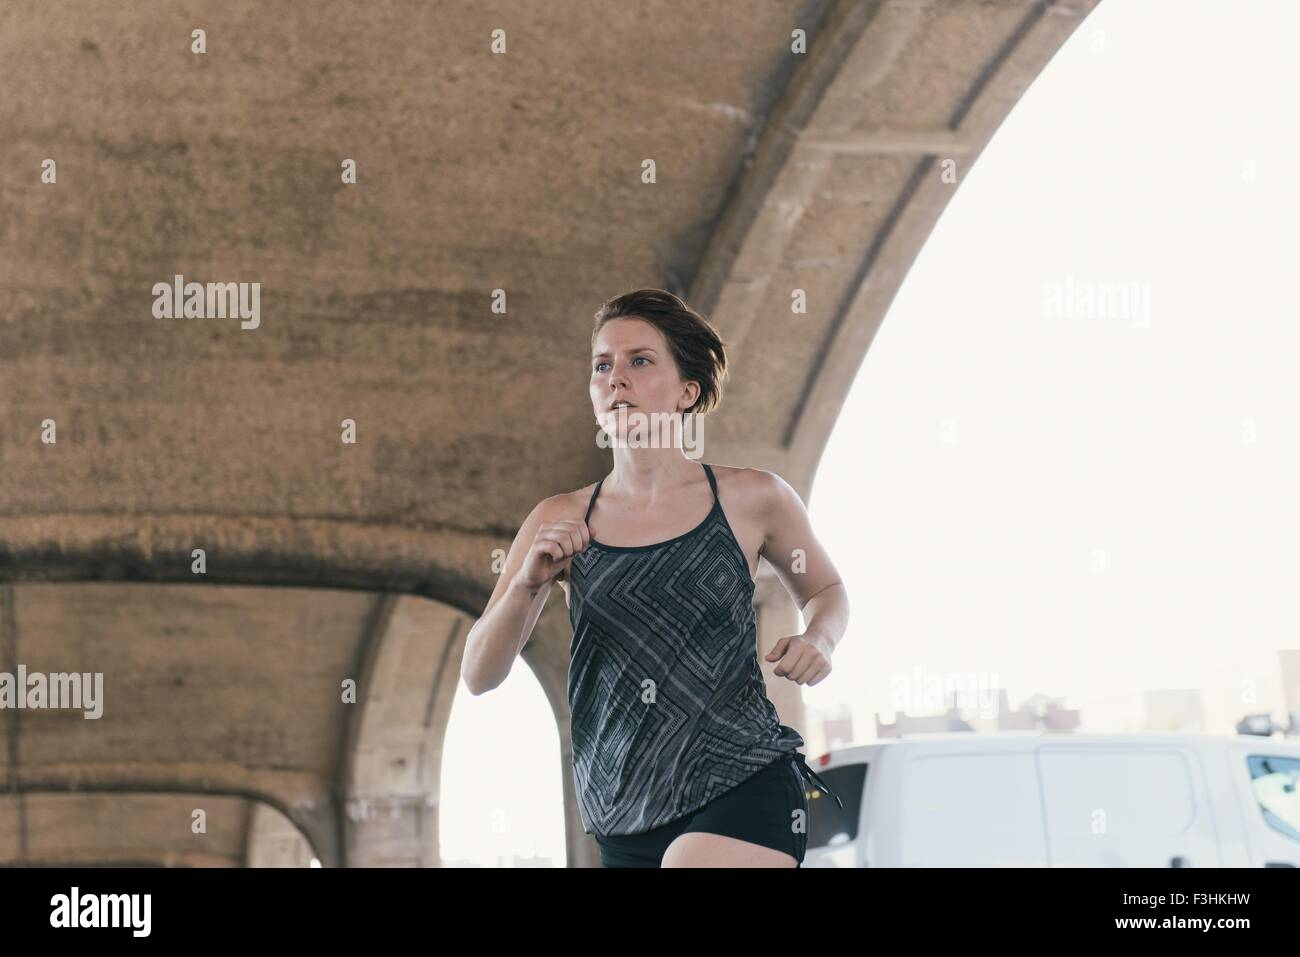 Mid adult woman, working out, running,, outdoors - Stock Image